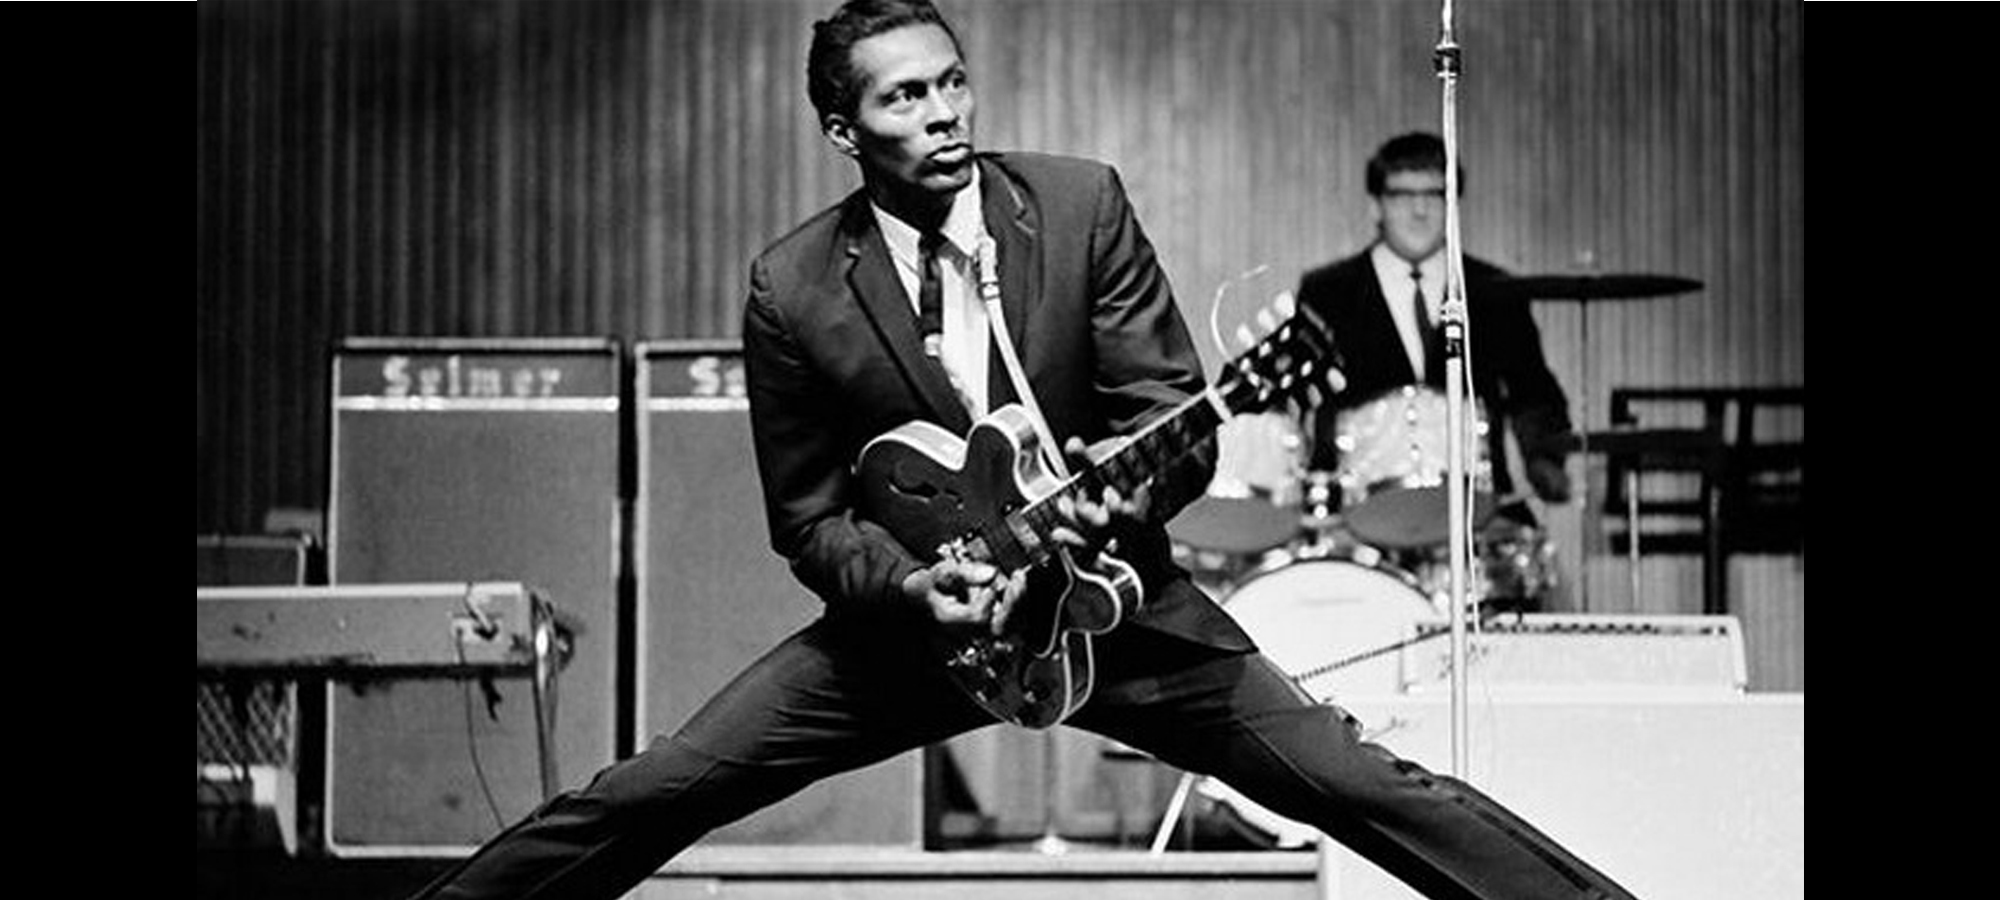 Remembering Chuck Berry, New Music To Follow